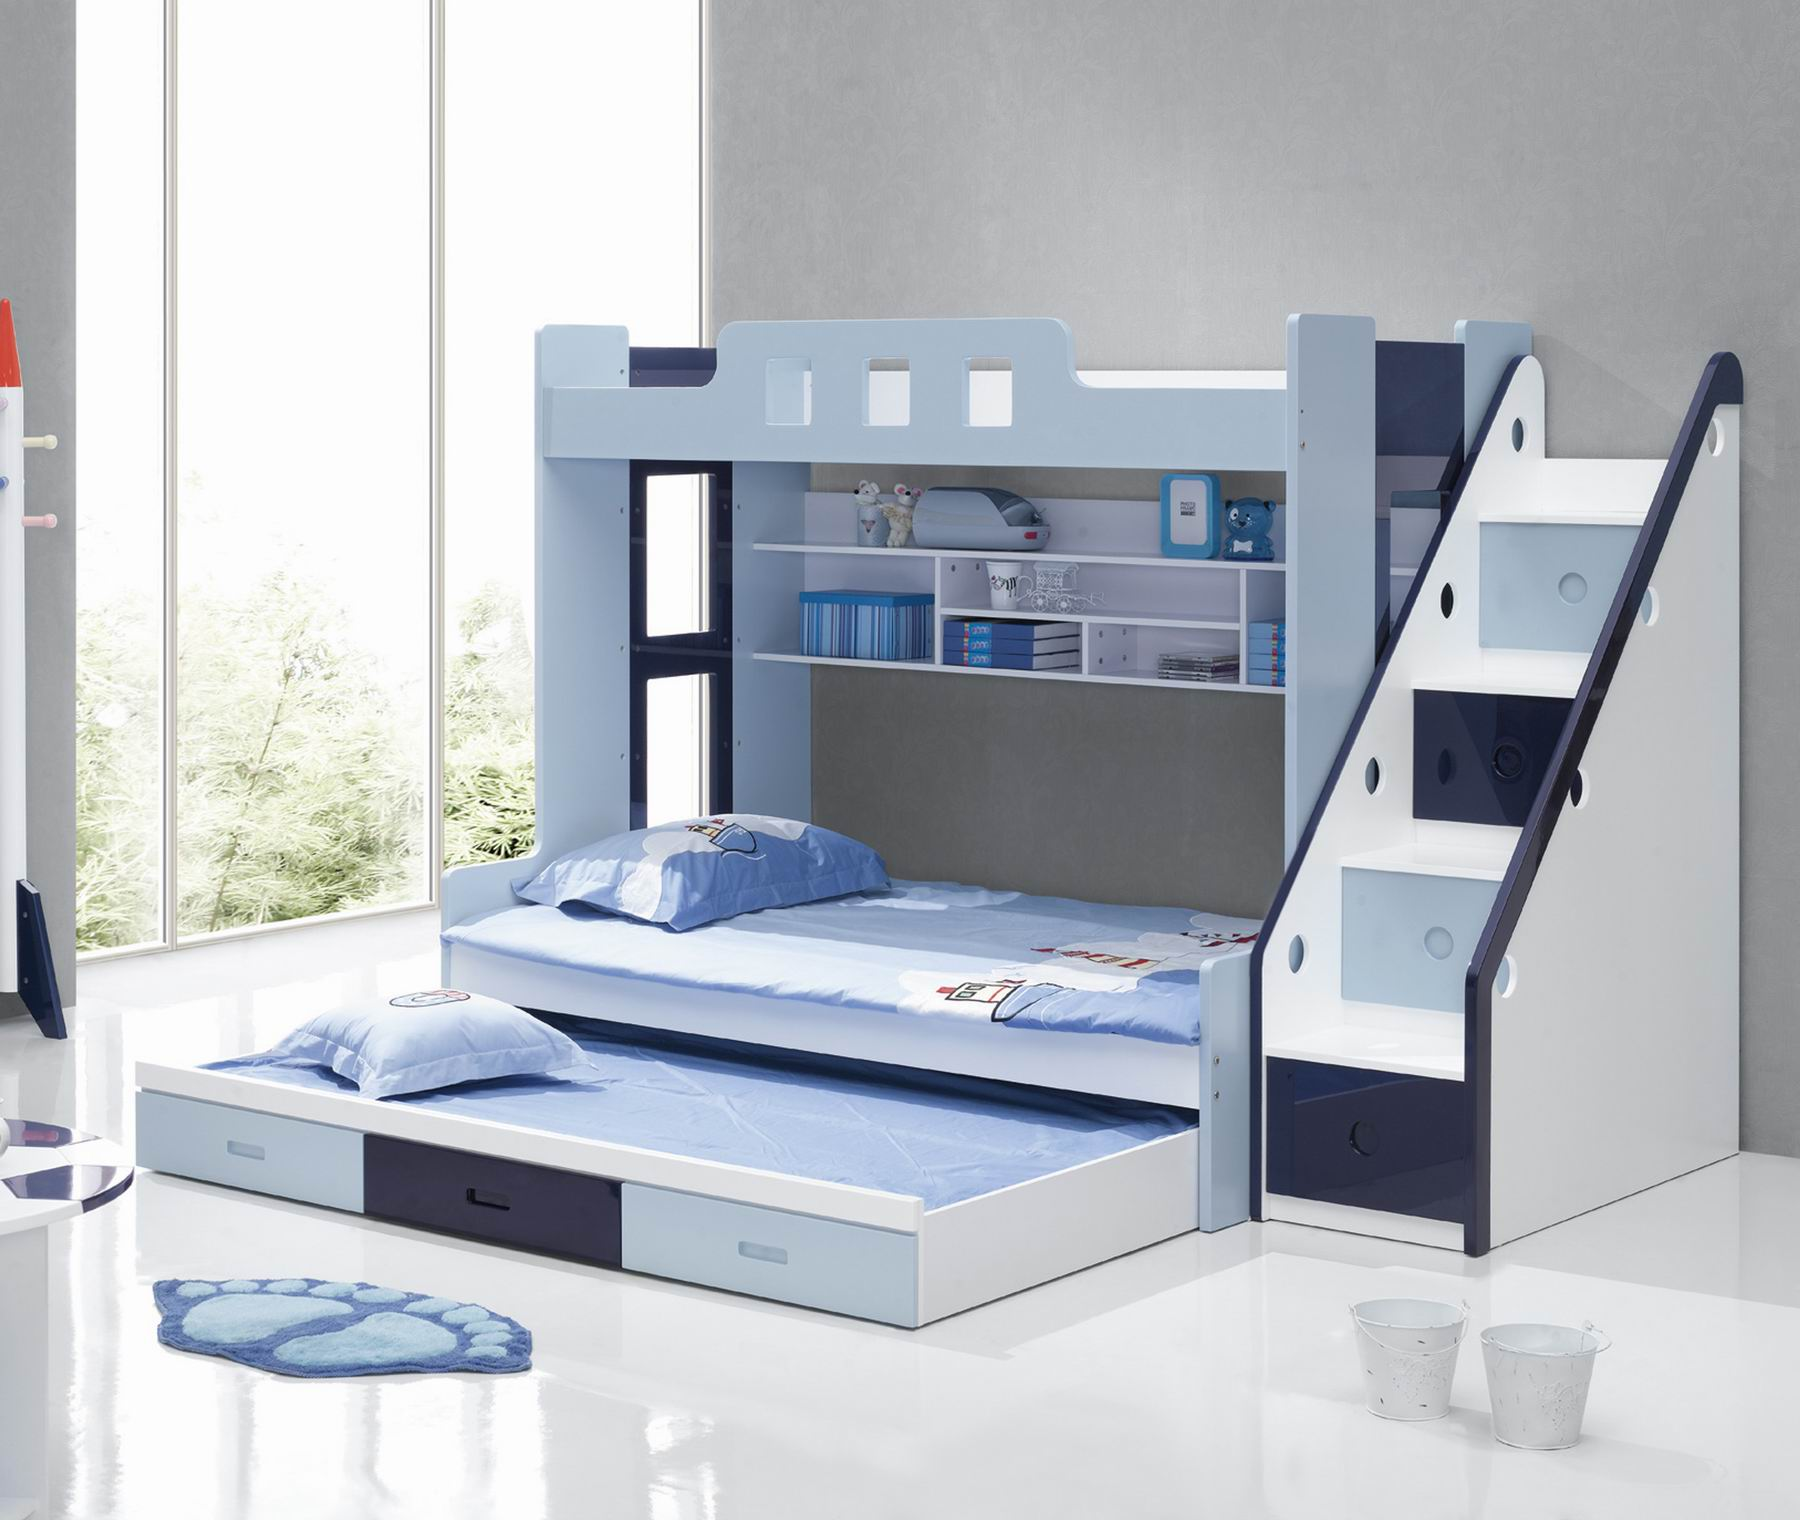 Bunk beds for girls and boys - Bunk Bed Couch